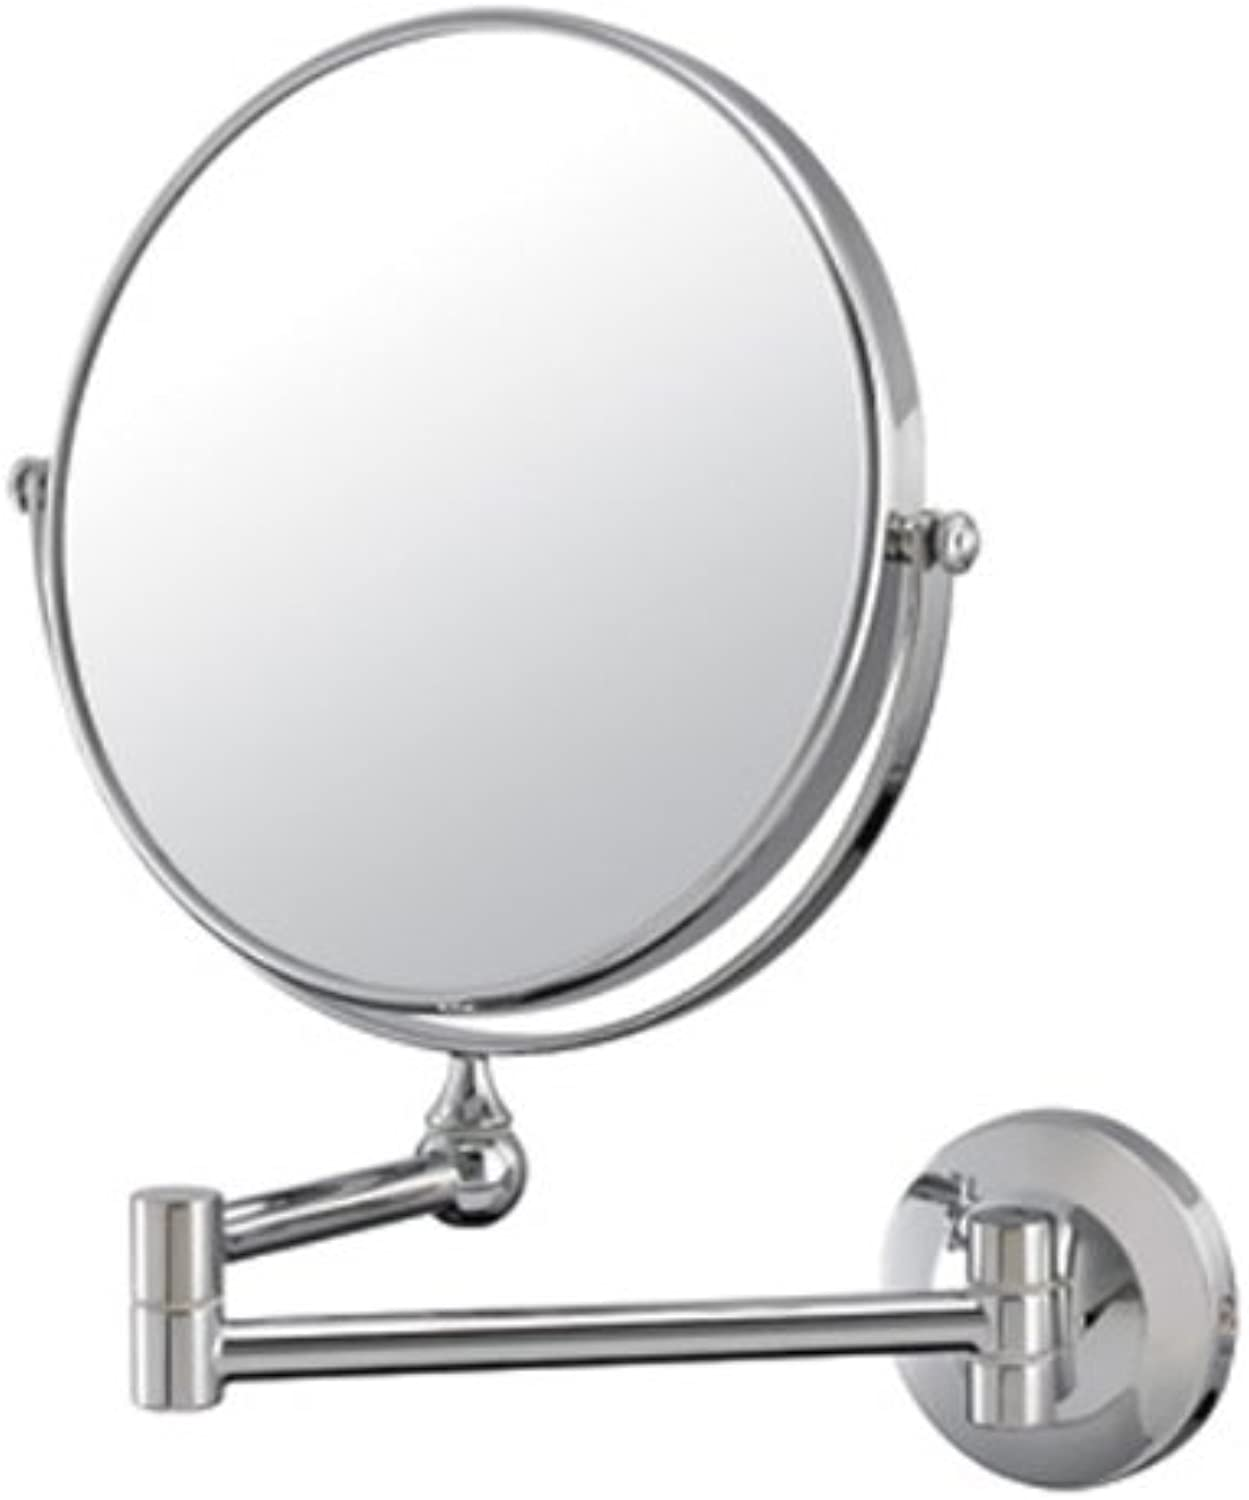 Mirror Image 20740 Double Pivot Arm Wall Mirror with Chrome Frame, 7.75-Inch